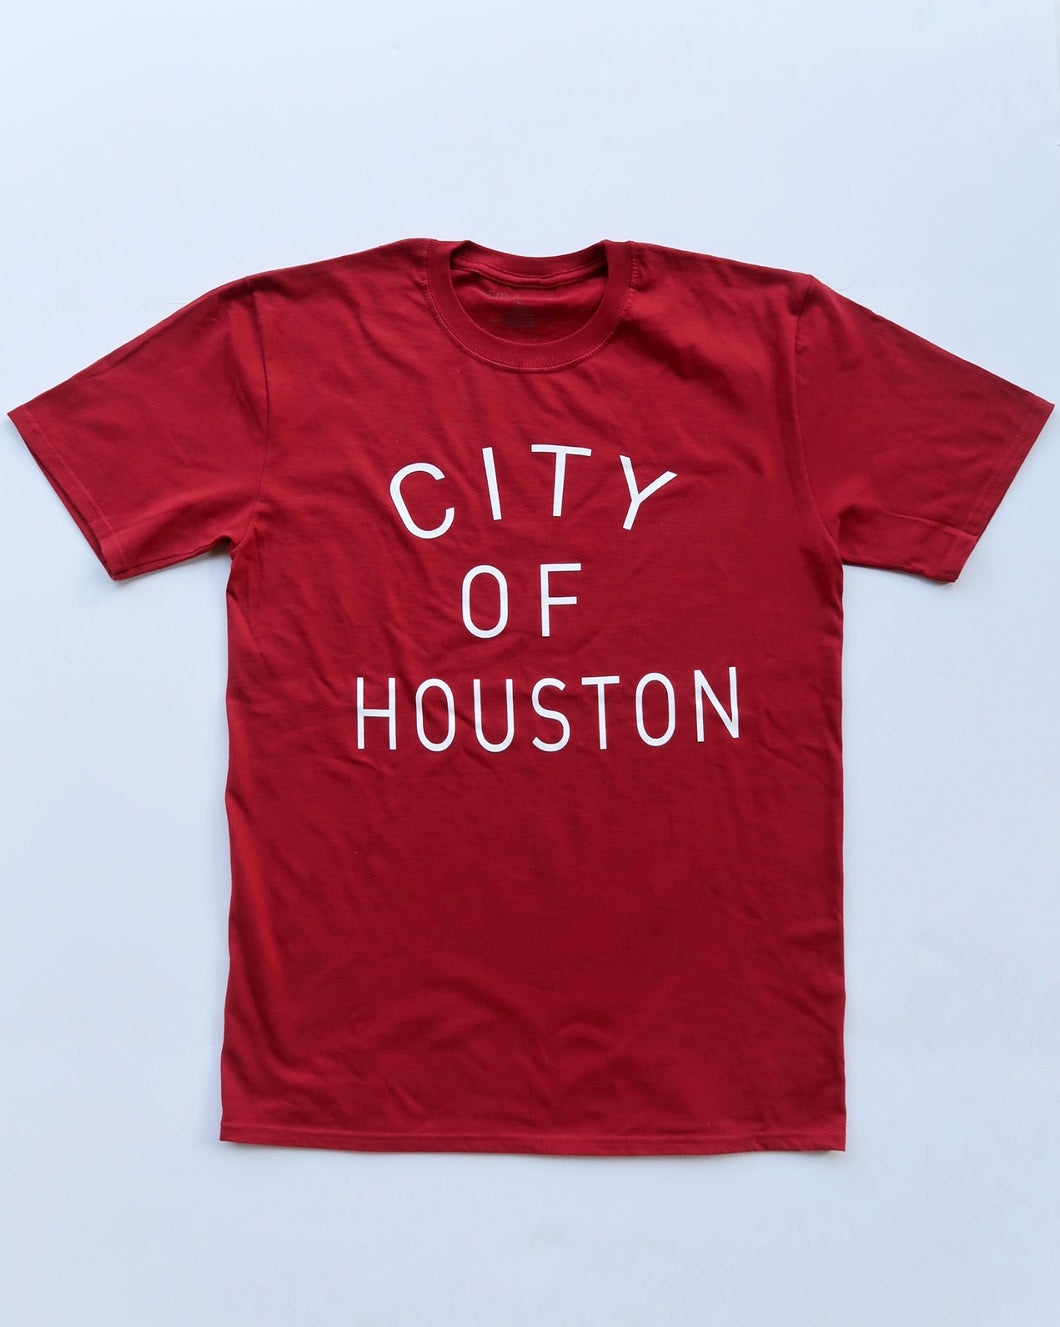 The City of Houston Tee (Unisex Red/White)